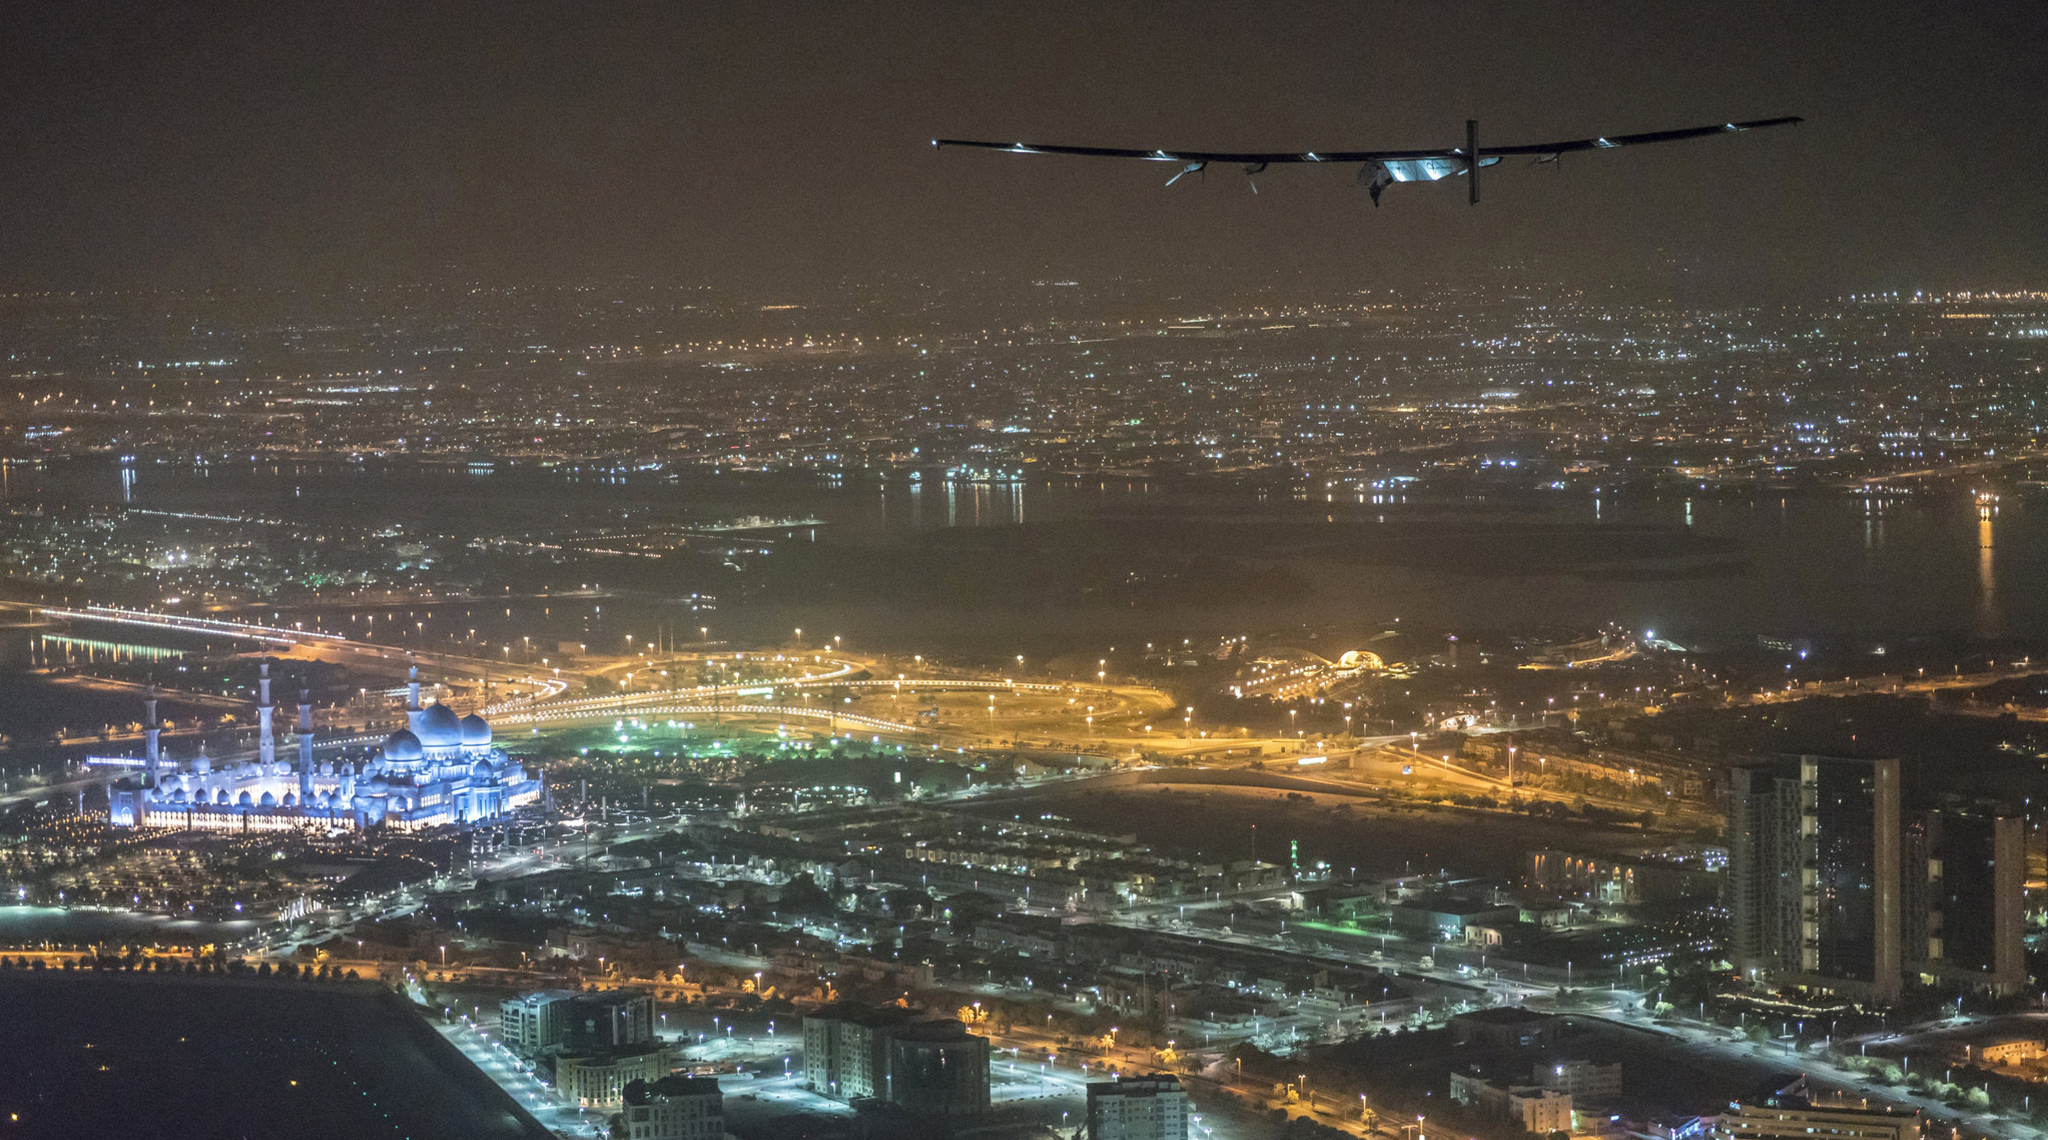 Solar Impulse 2, the solar powered plane, piloted by Swiss pioneer Bertrand Piccard, is seen before landing in Abu Dhabi to finish the first around the world flight without the use of fuel, United Arab Emirates